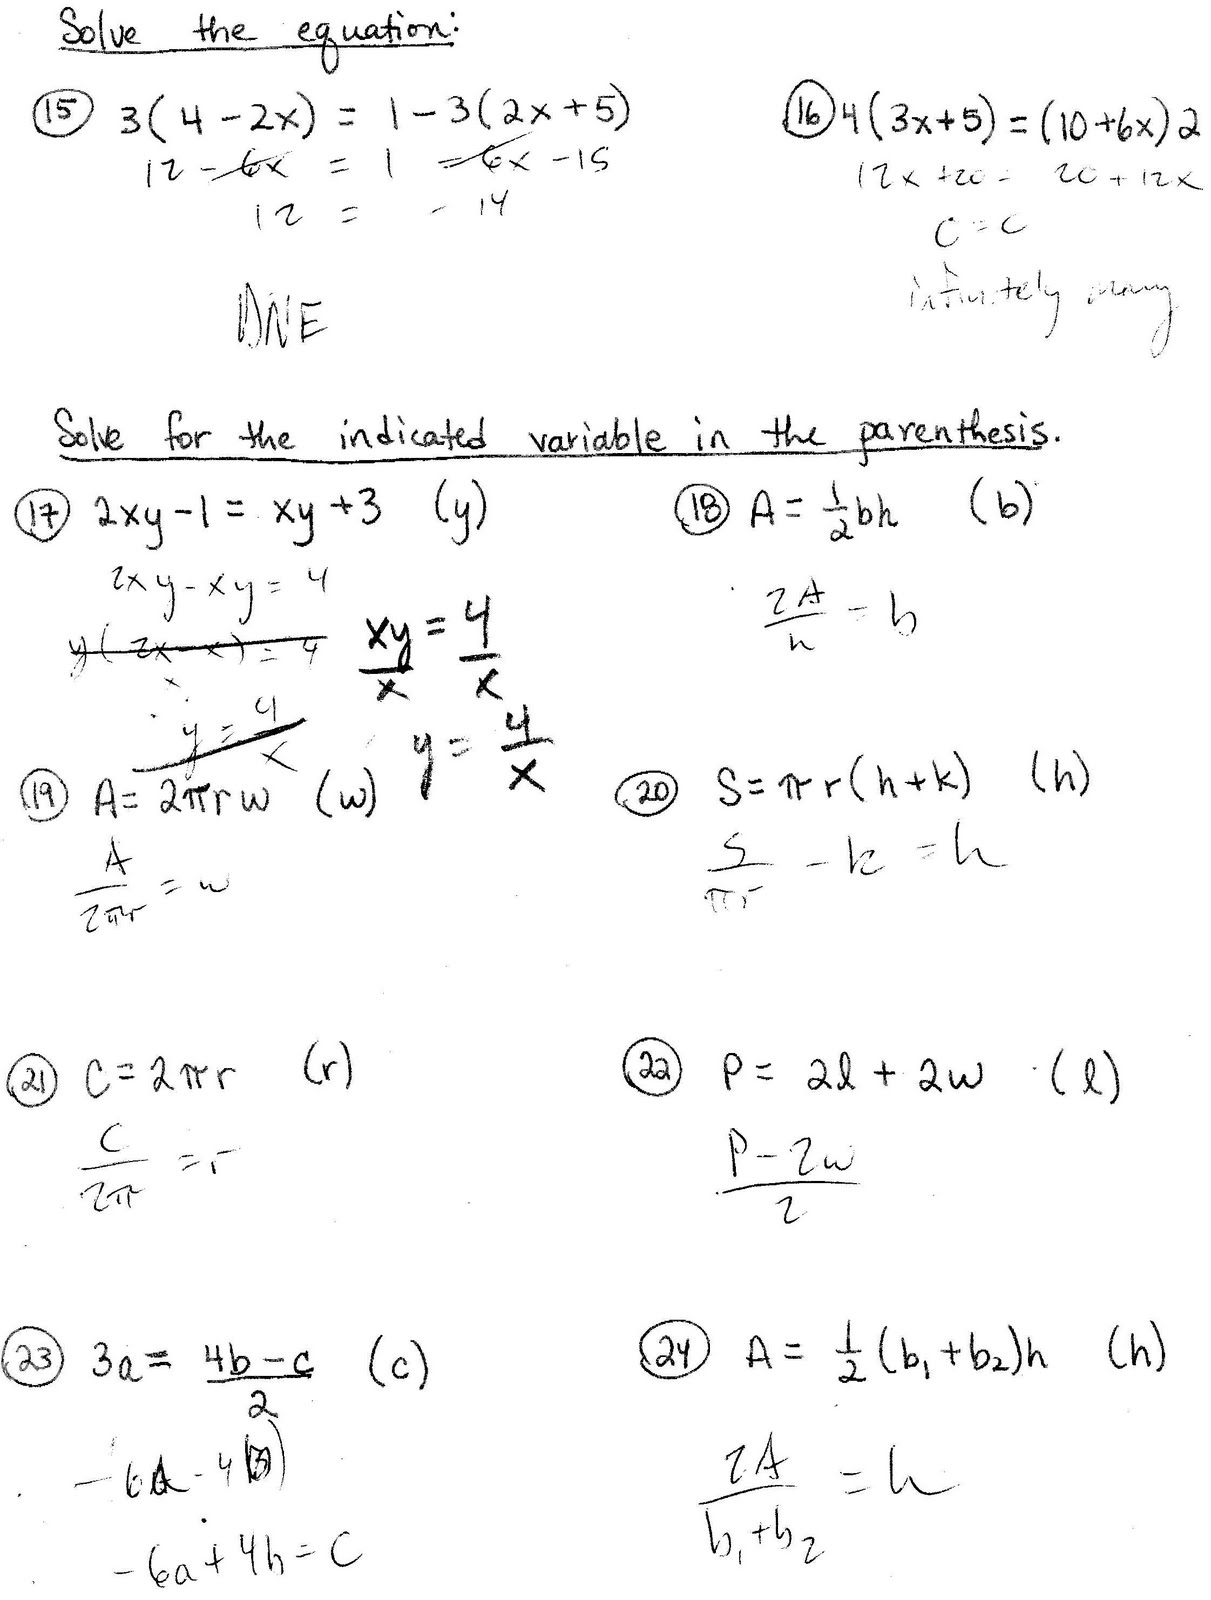 Worksheets Literal Equations Worksheets mr suominens math homepage linear literal equations equations